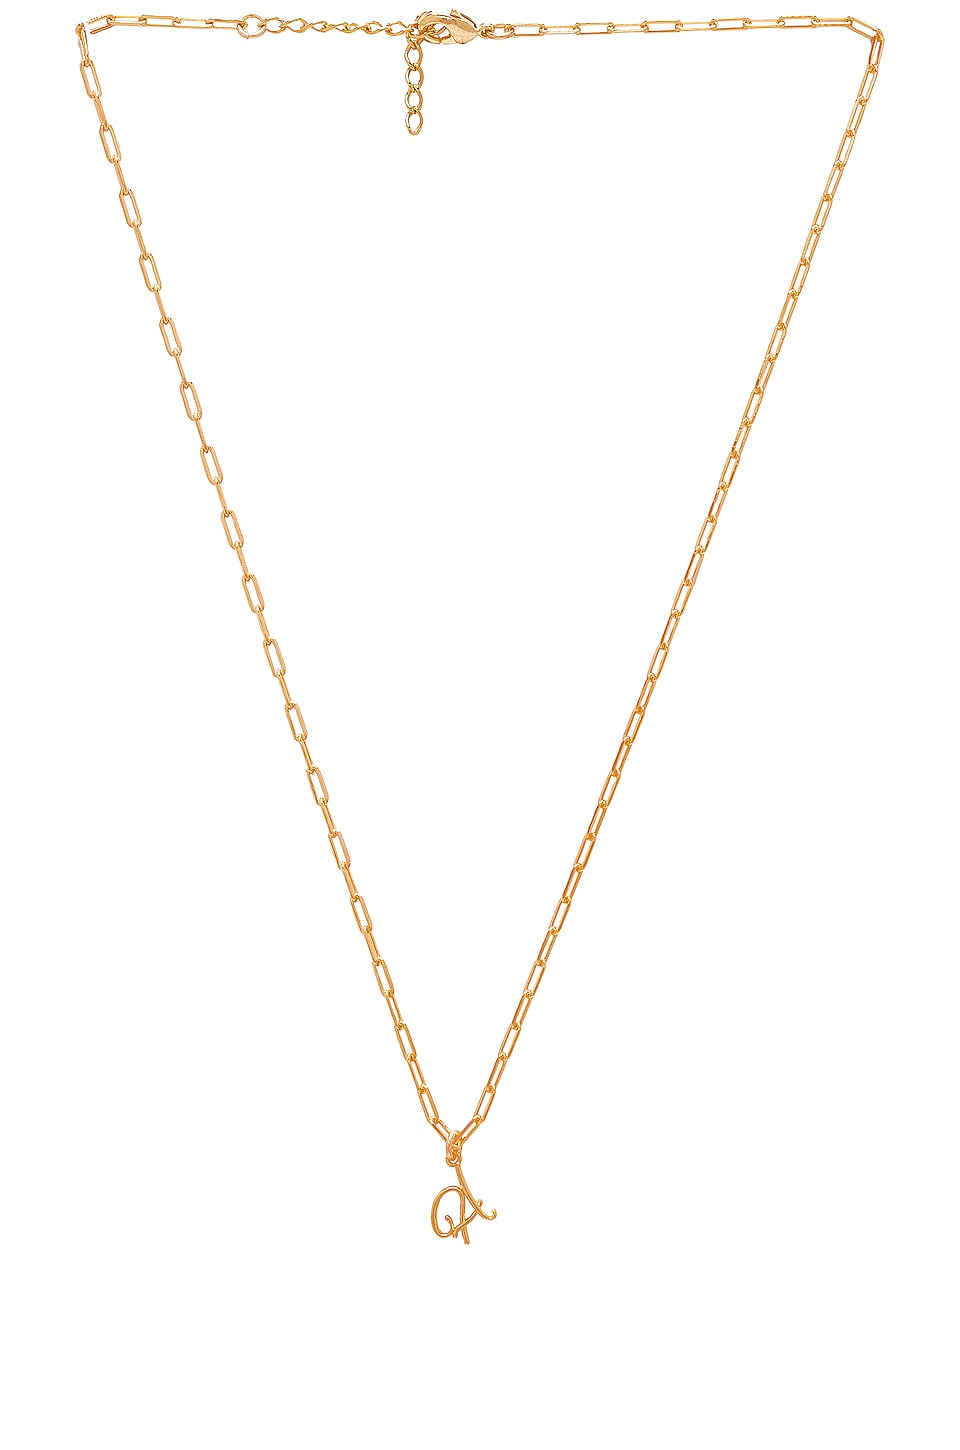 joolz by Martha Calvo A Initial Necklace in Gold